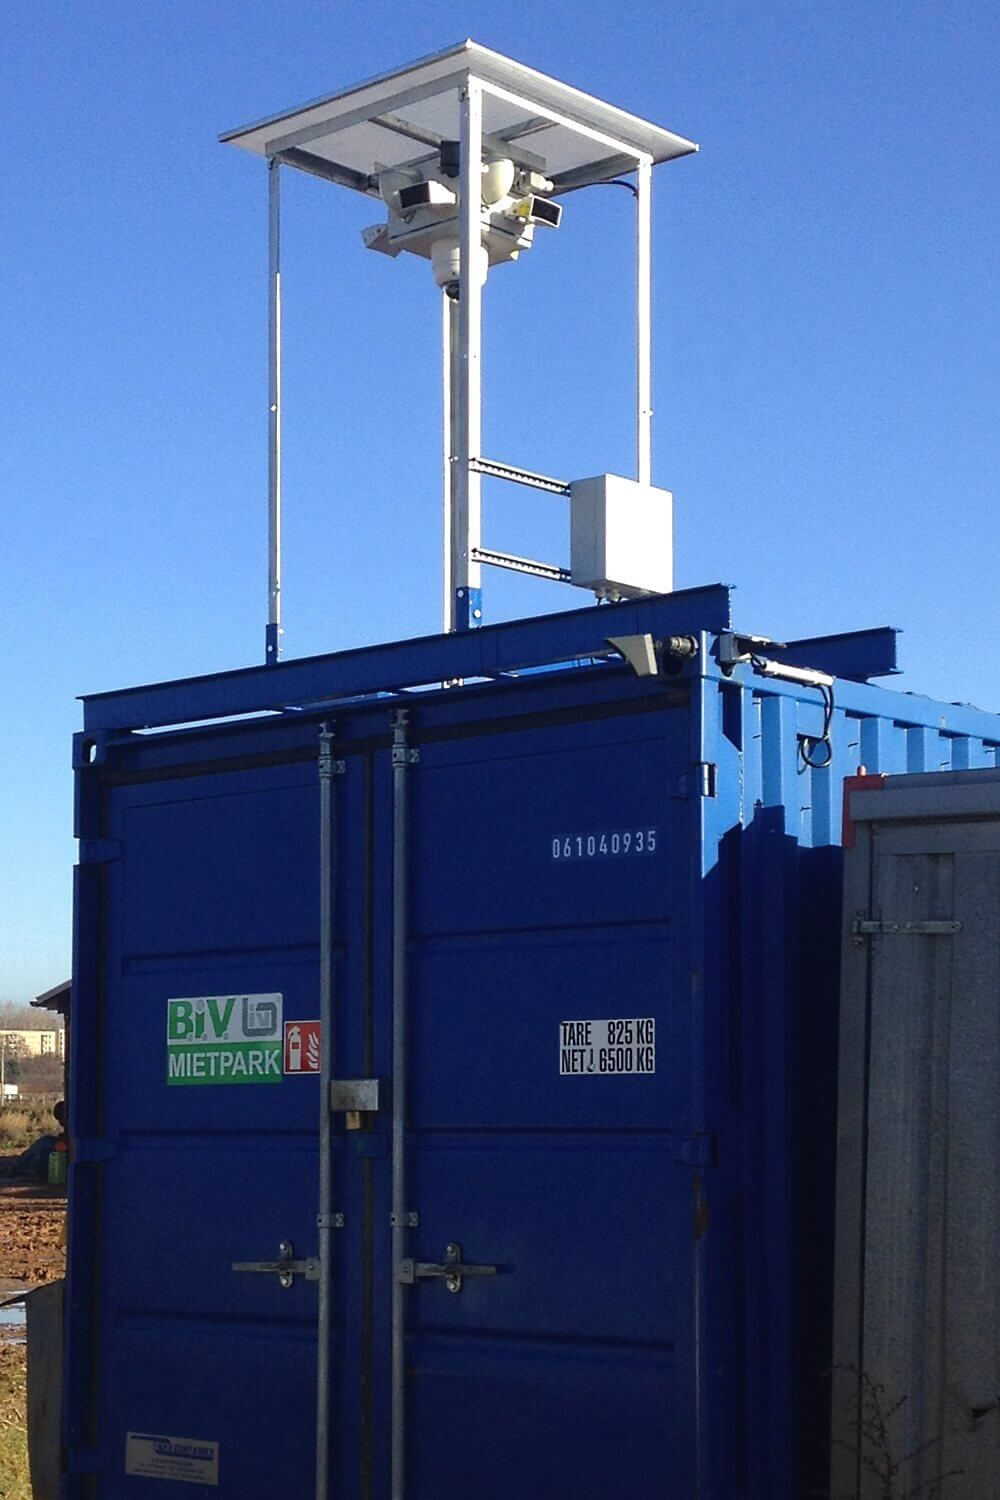 Video-head, energy management and linkage were mounted directly on existing construction containers.